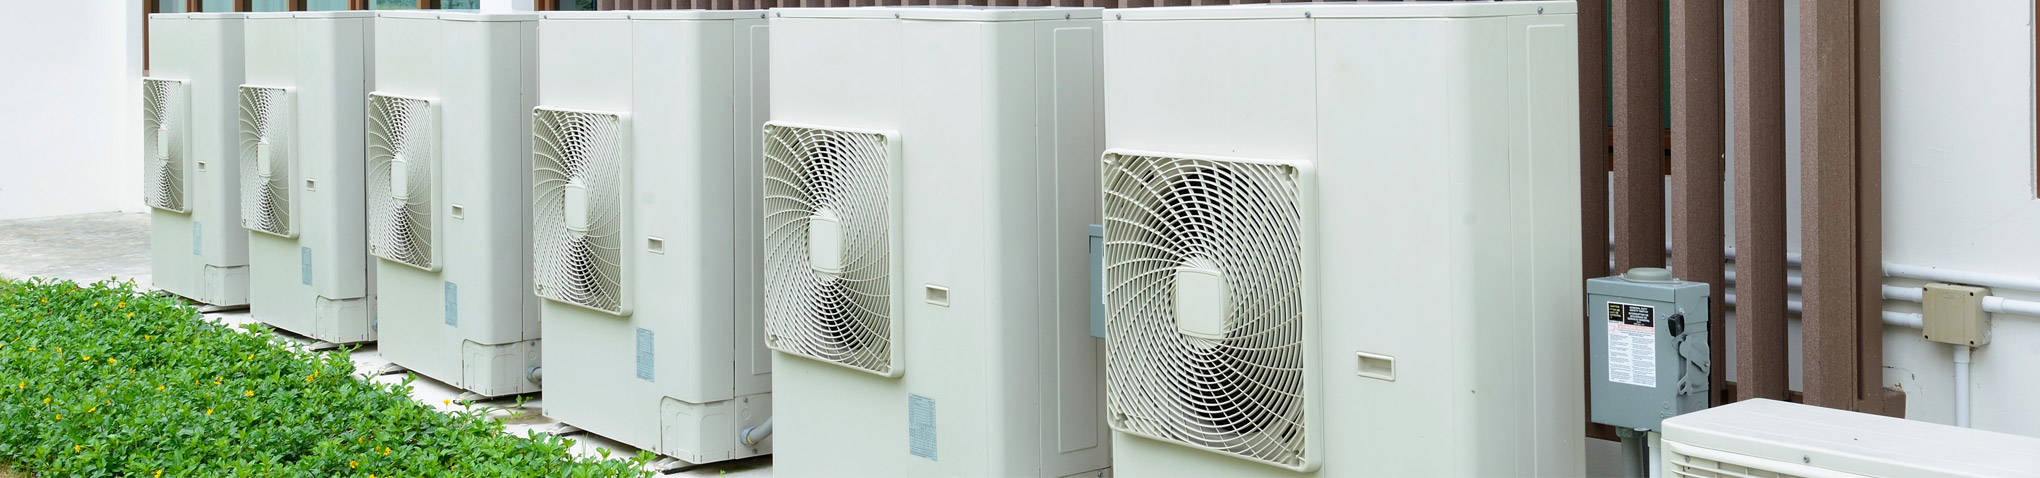 Star Services Heating & Air Conditioning